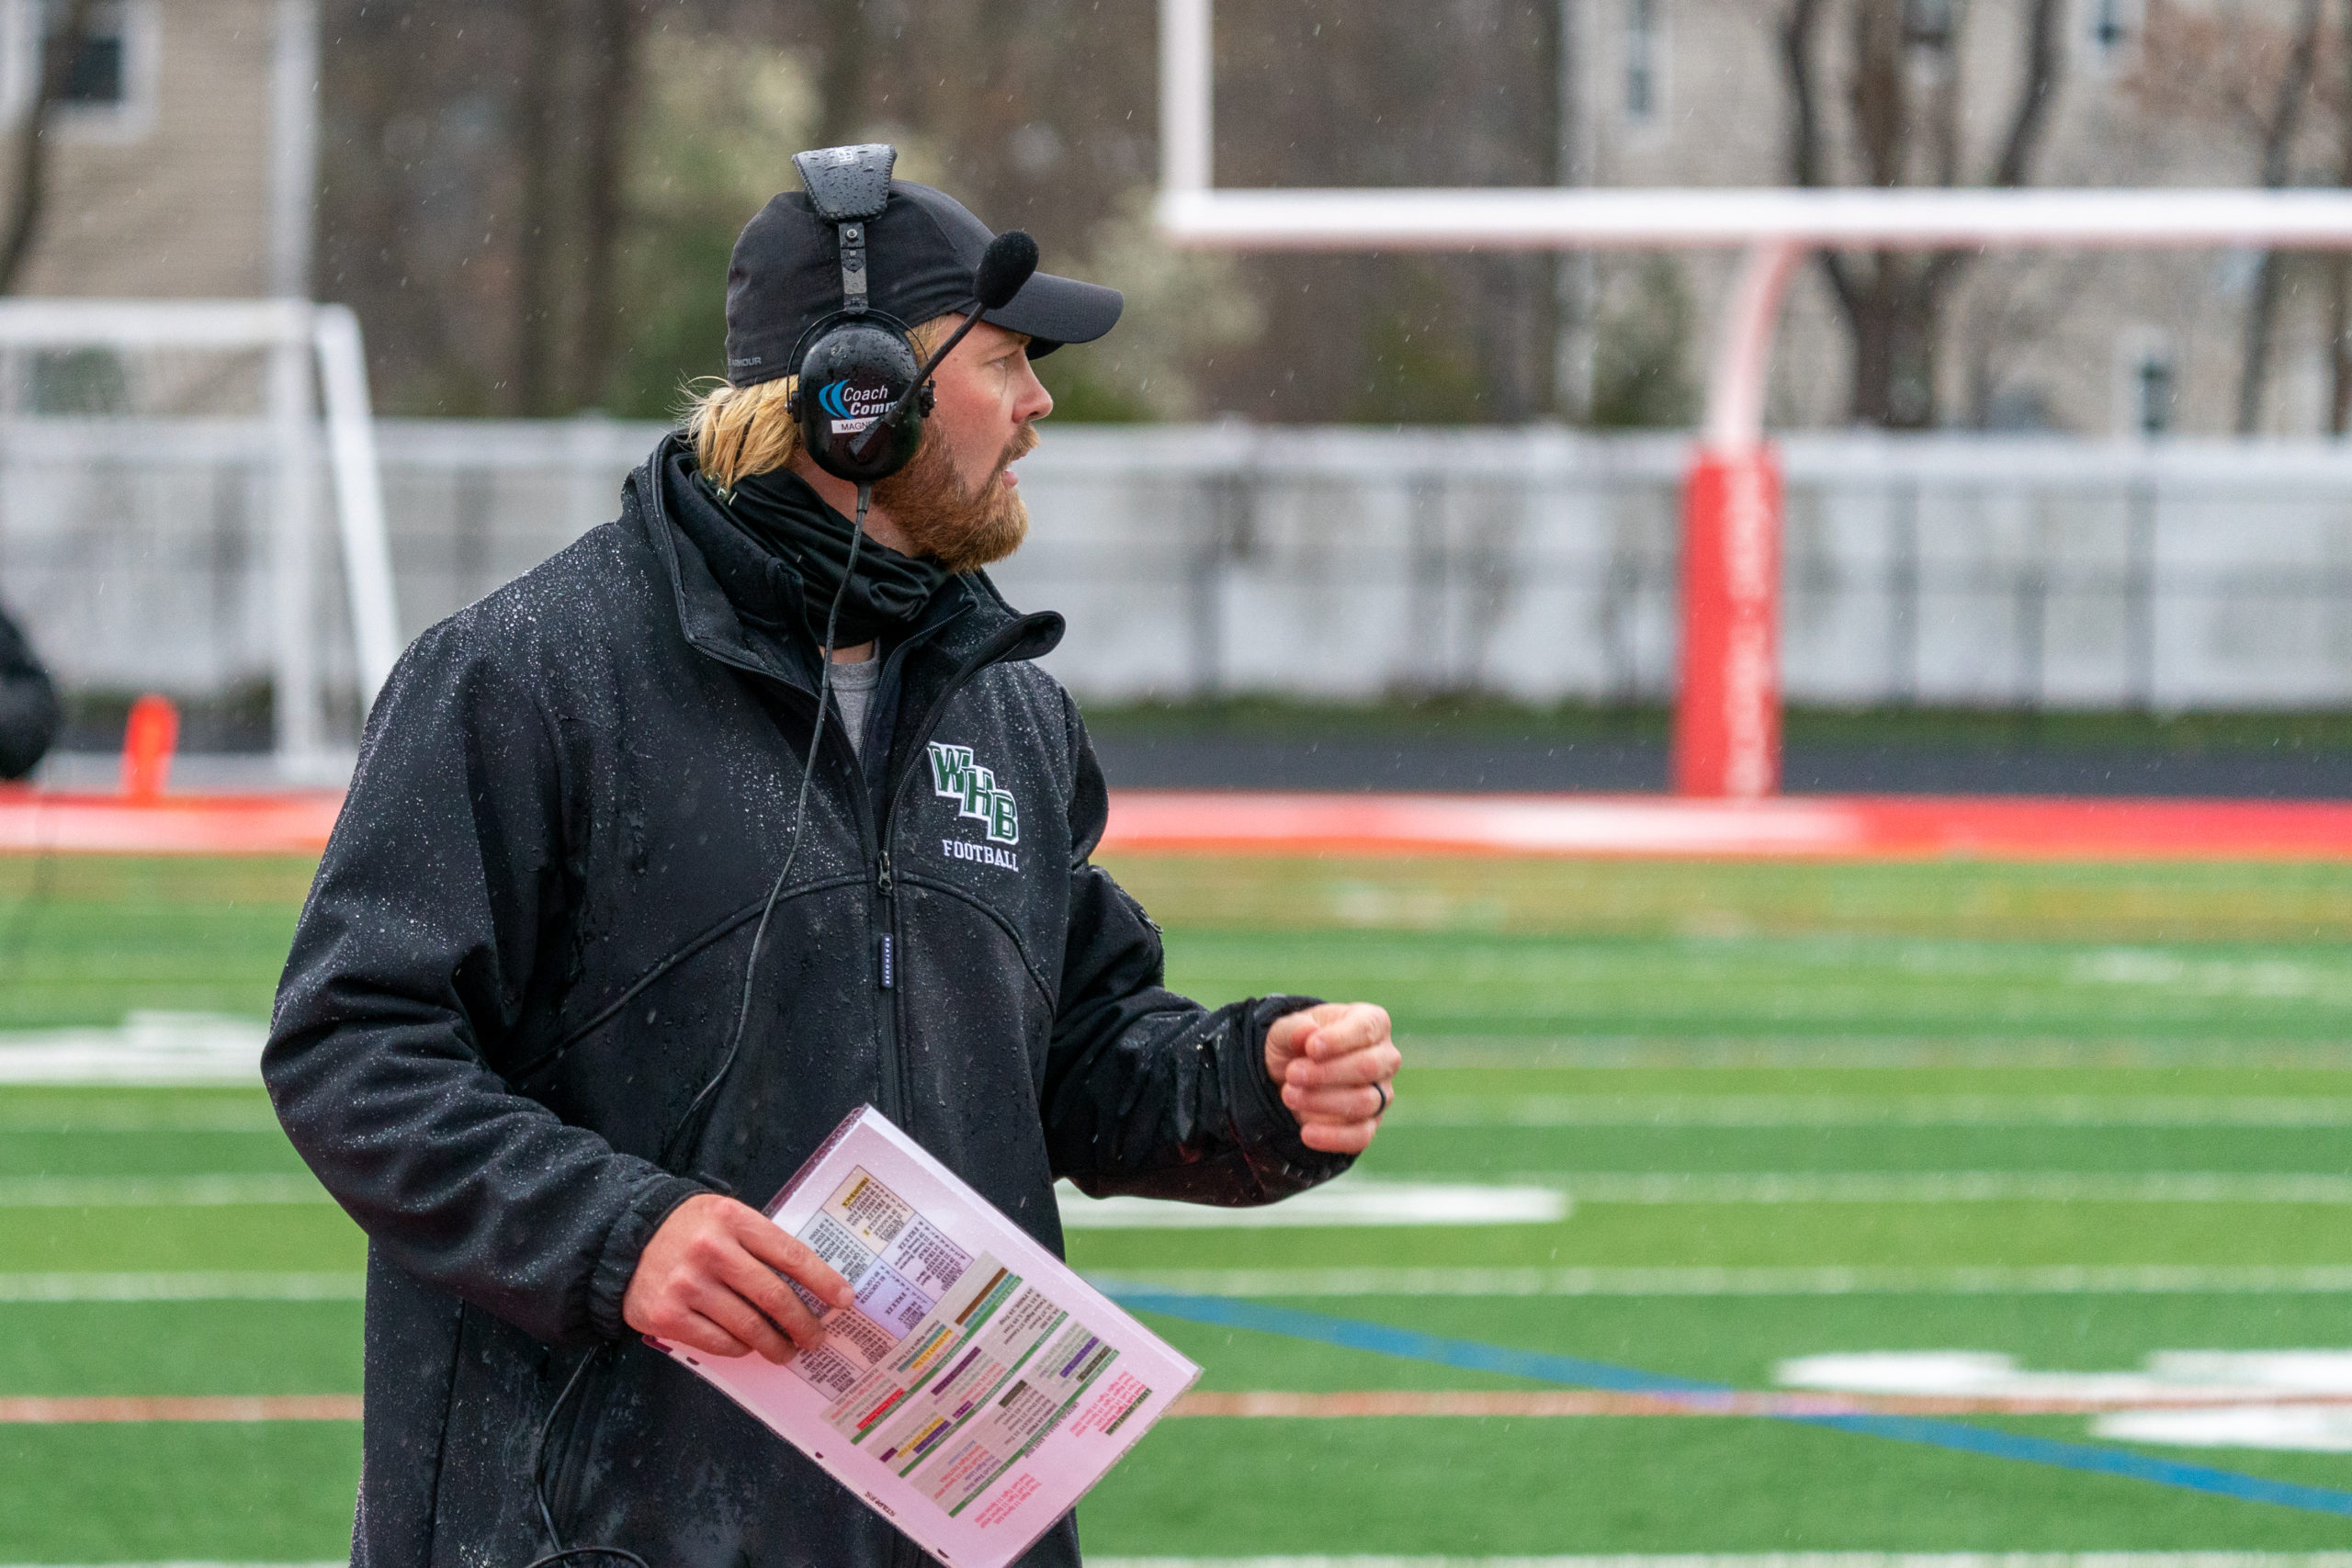 Westhampton Beach assistant coach Cole Magner is pumped up after a big play.